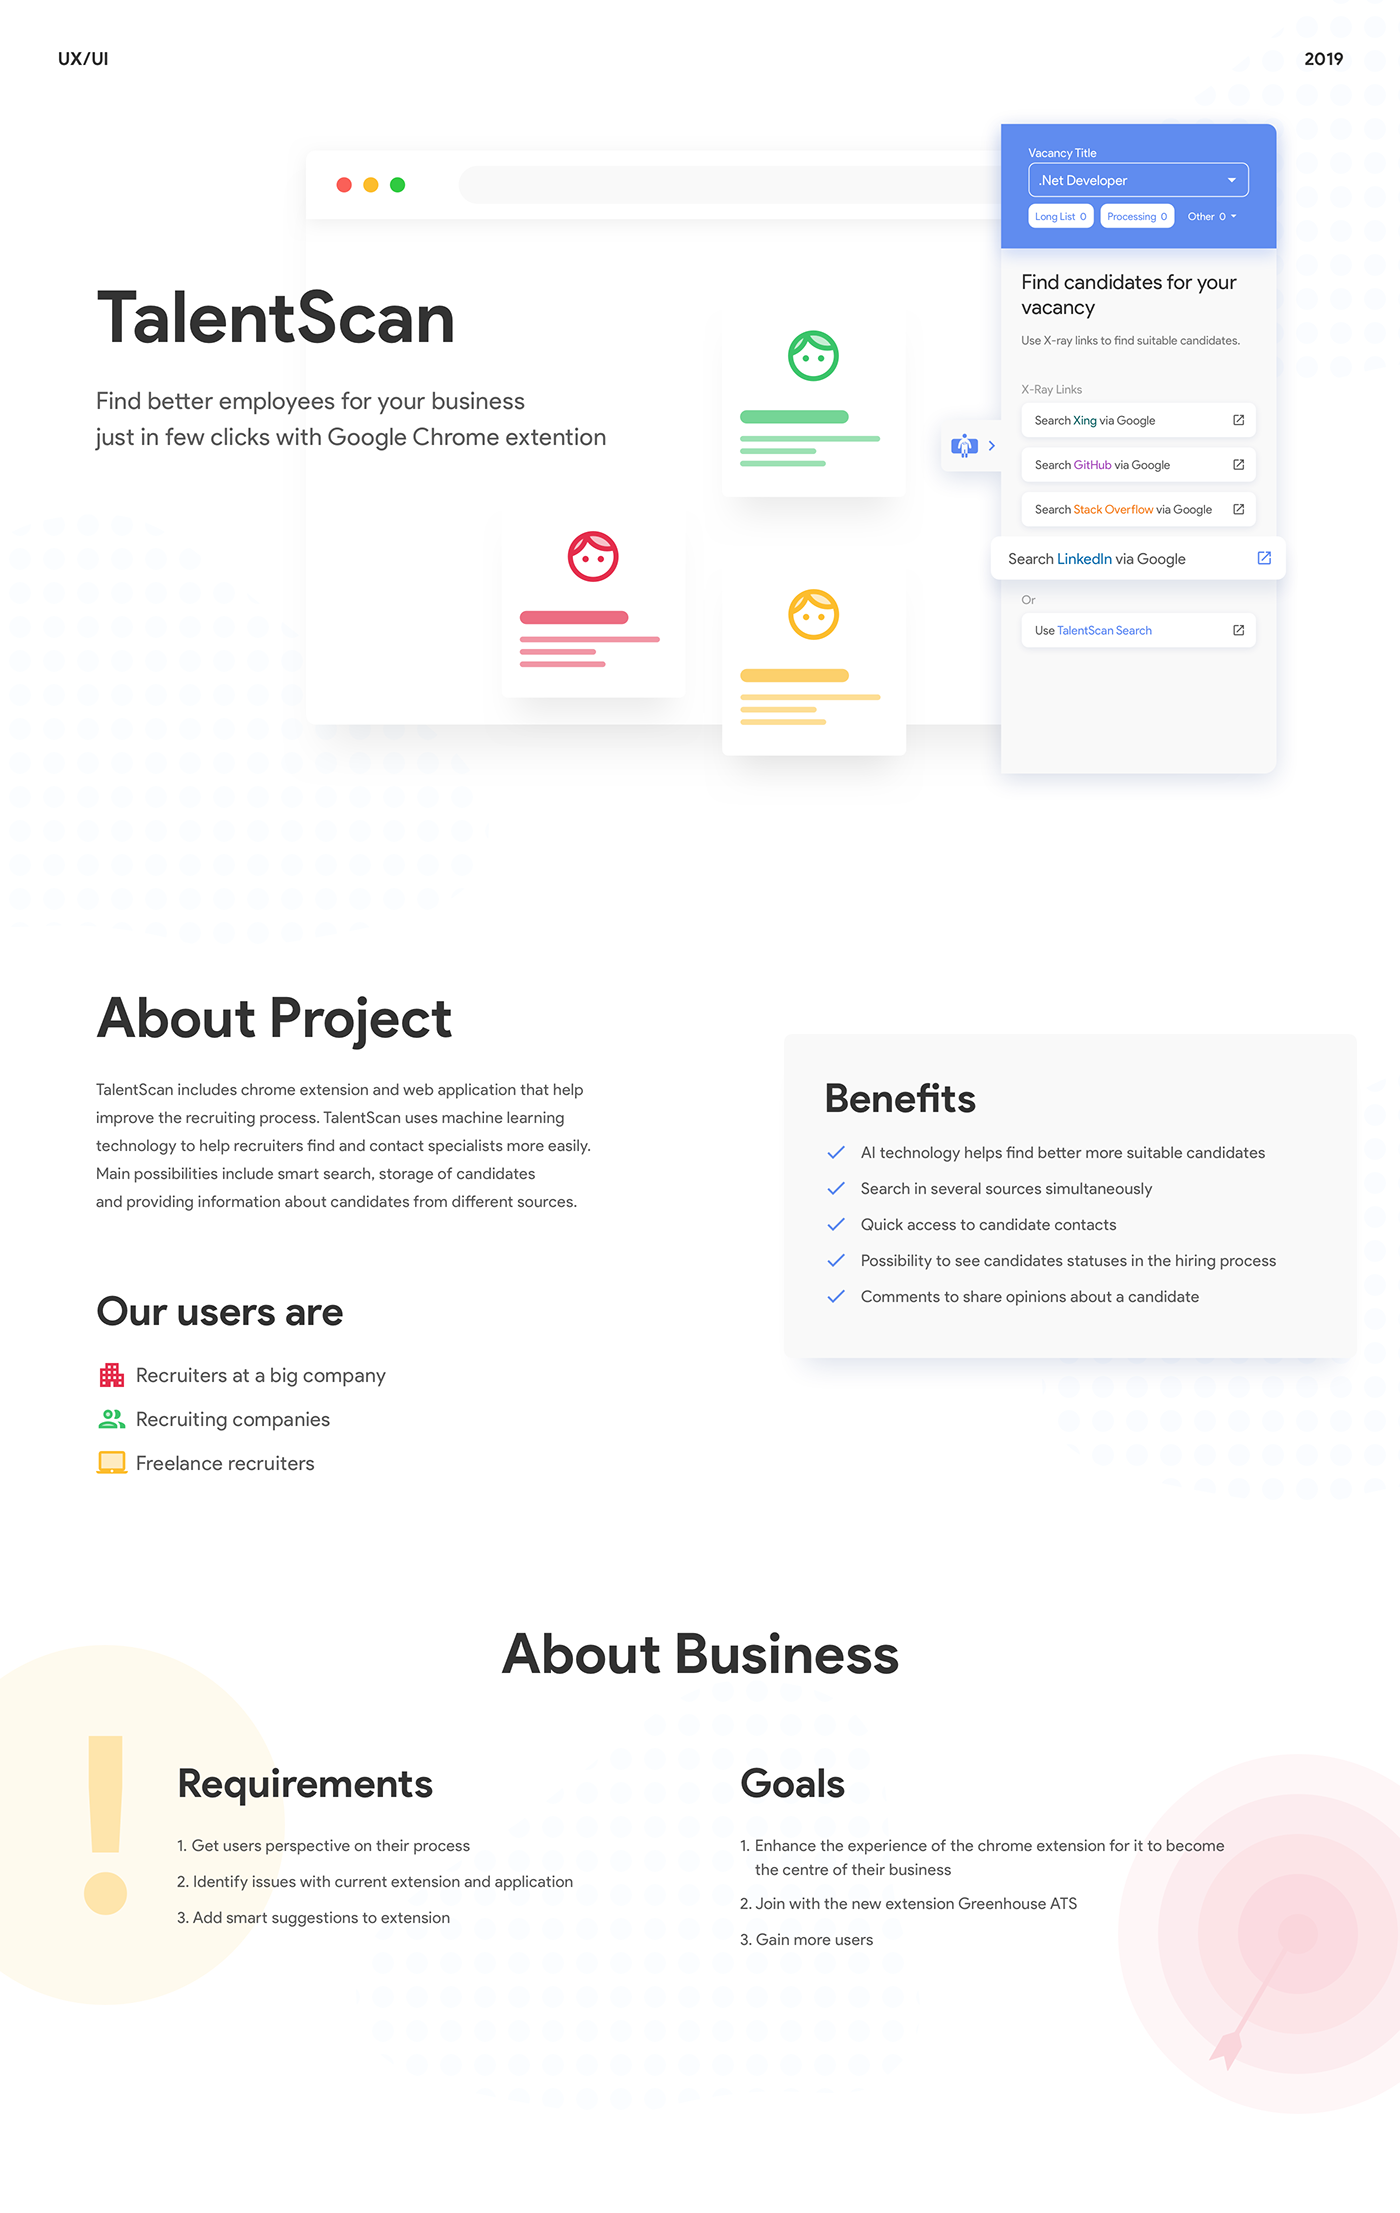 case Case Study chrome chrome extension material plug-in study UI/UX user experience ux/ui